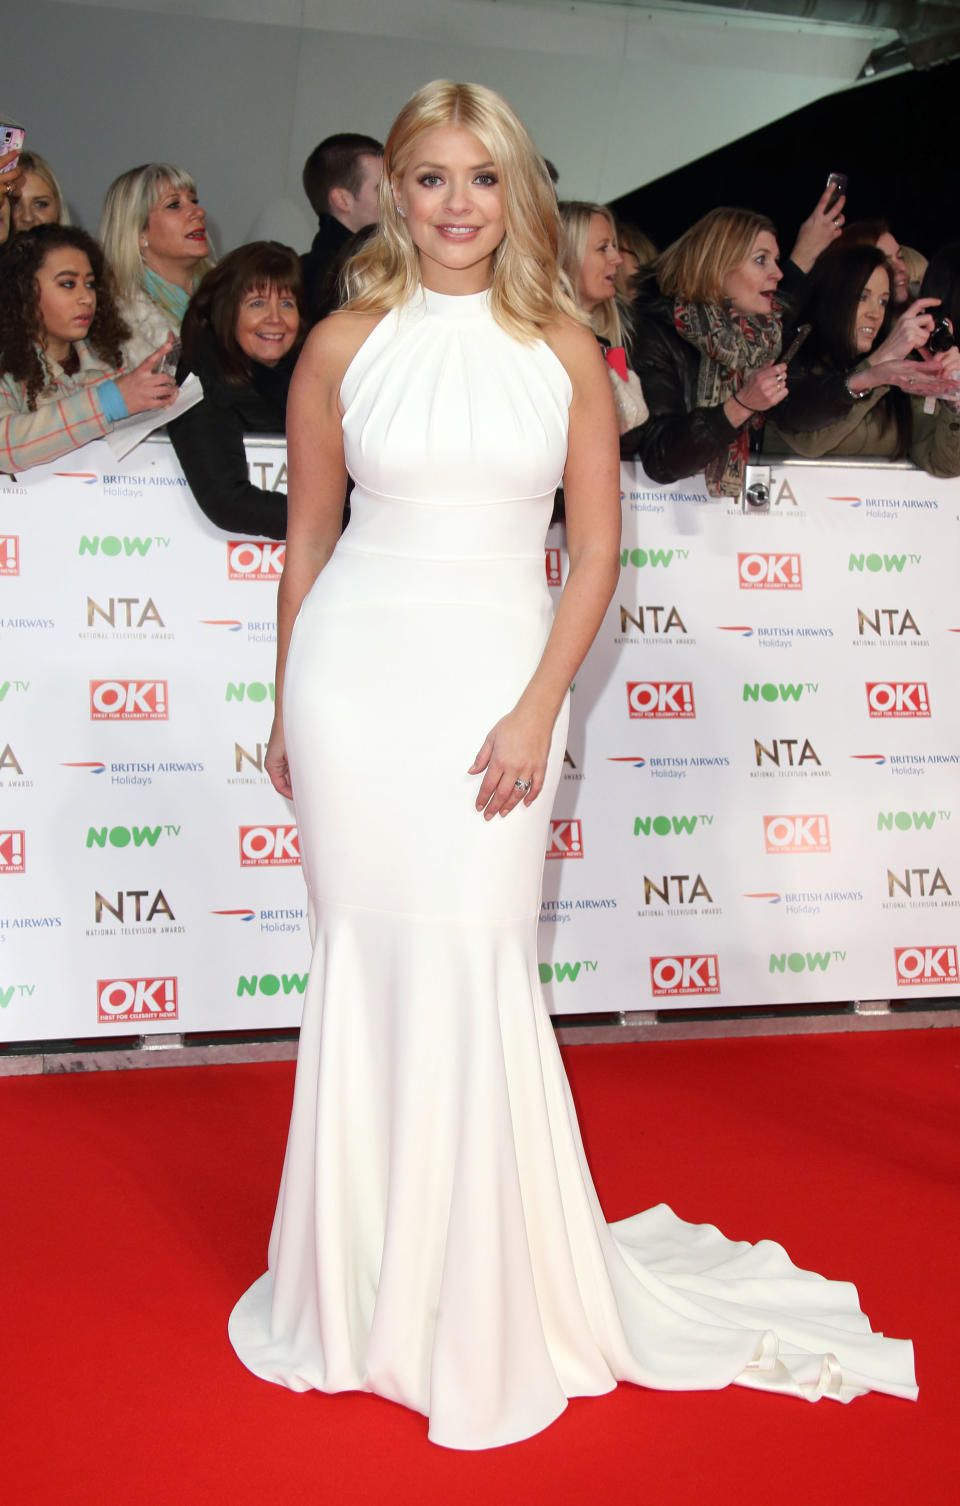 LONDON, ENGLAND - JANUARY 20: Holly Willoughby attends the 21st National Television Awards at The O2 Arena on January 20, 2016 in London, England.  (Photo by Mike Marsland/WireImage)